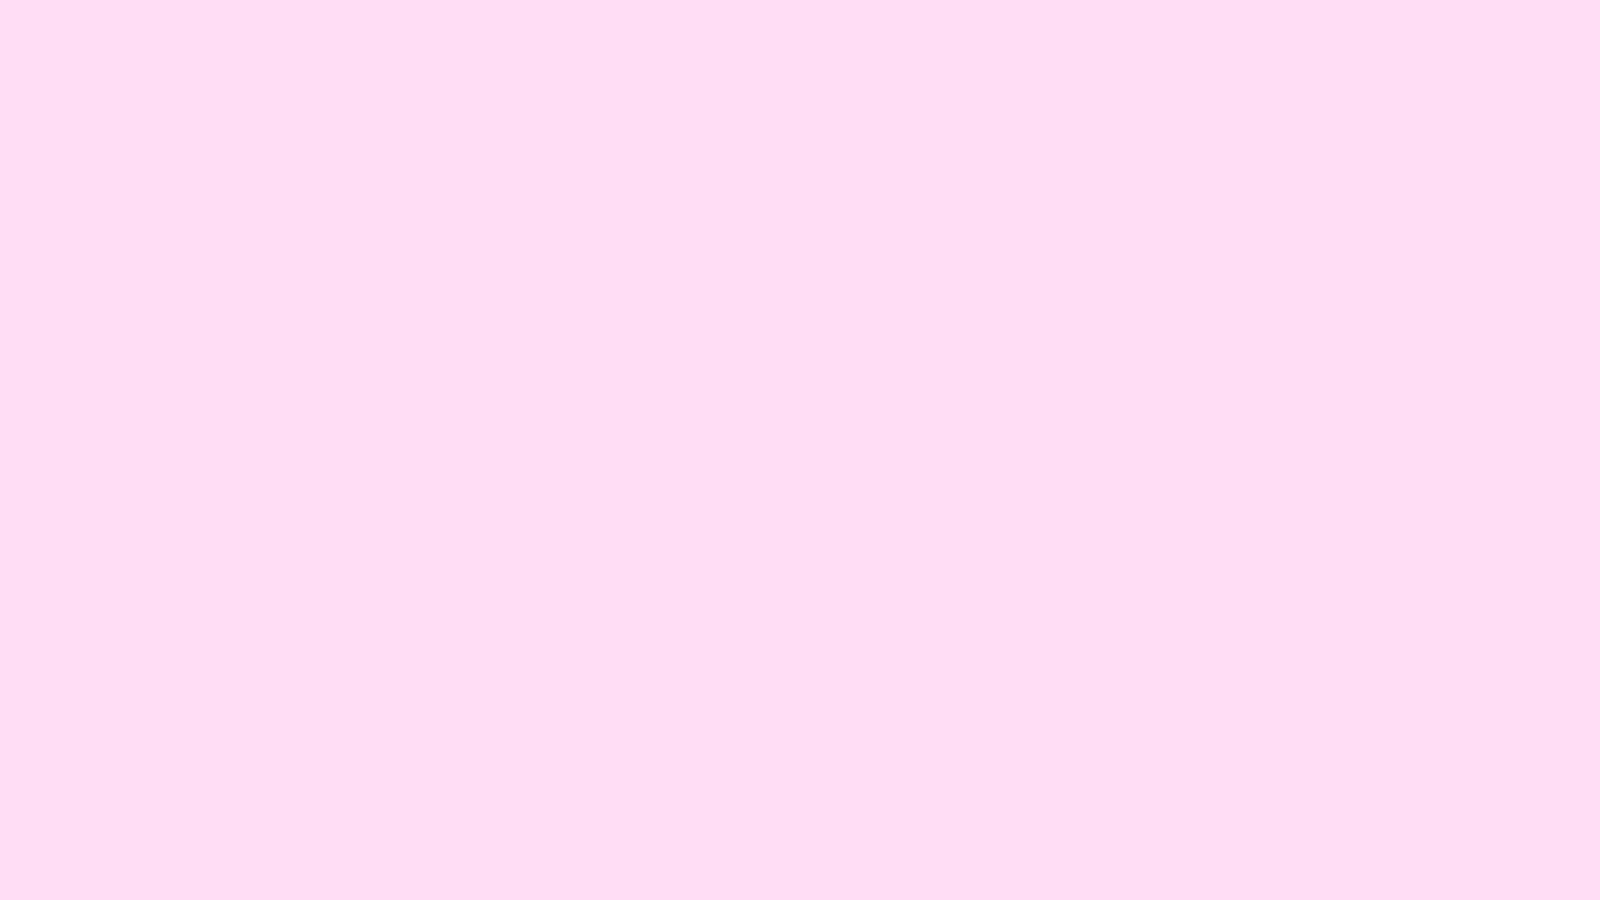 1600x900 Pink Lace Solid Color Background